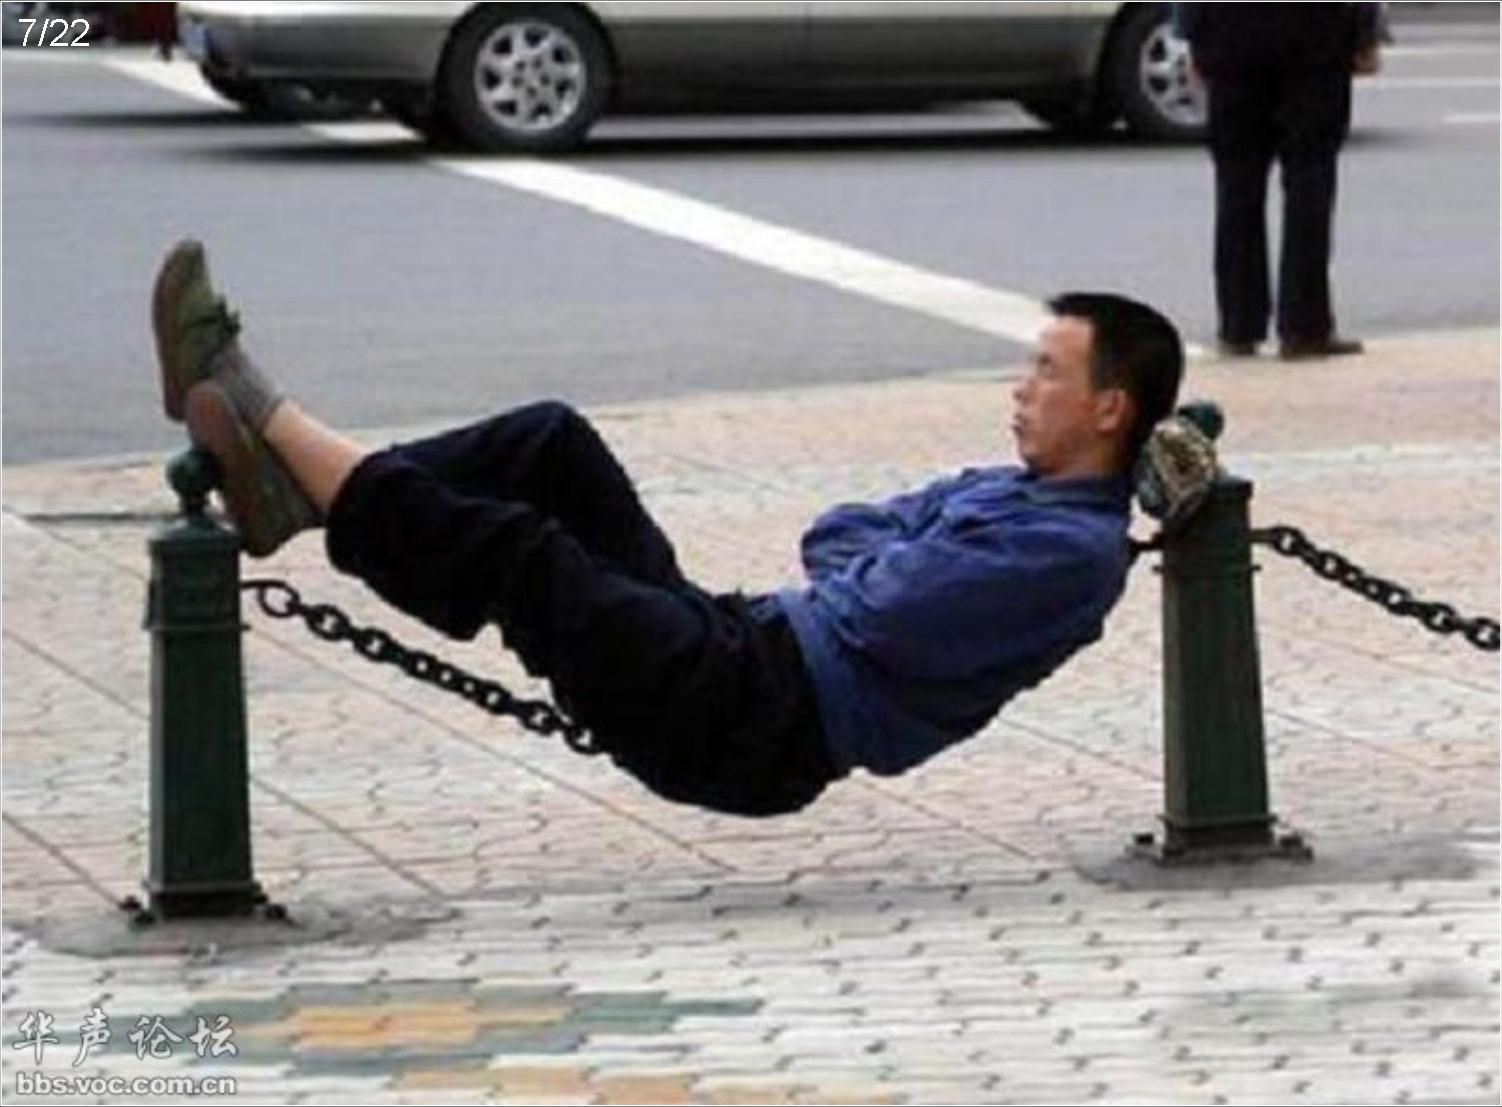 20 Random People Caught Publicly in Awkward Positions 3